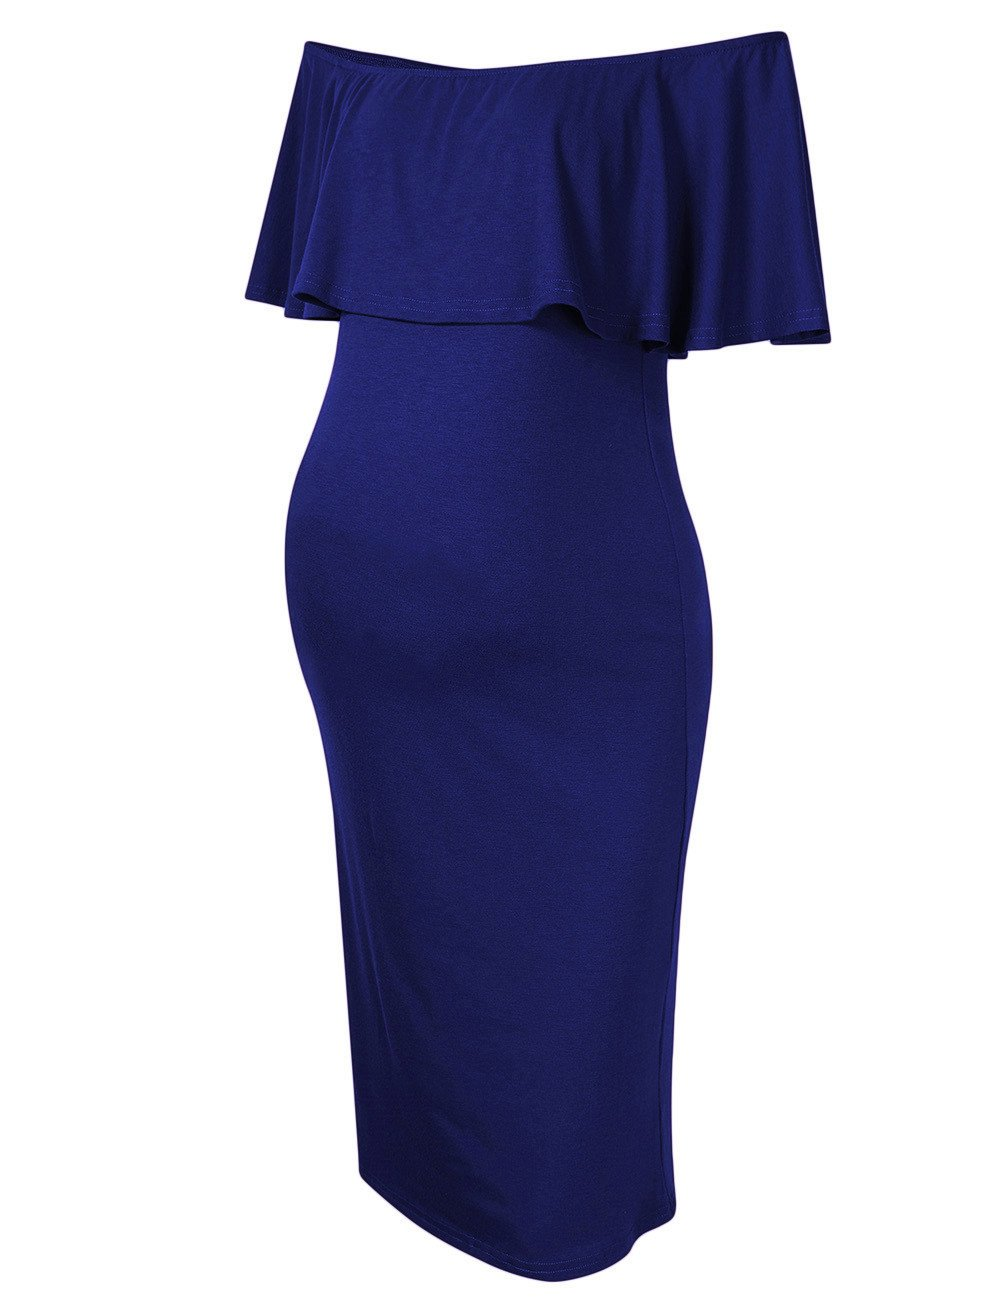 MissQee Maternity Dress Over The Shoulder Maternity Dress Casual Maxi Dress (L, Navy Blue)